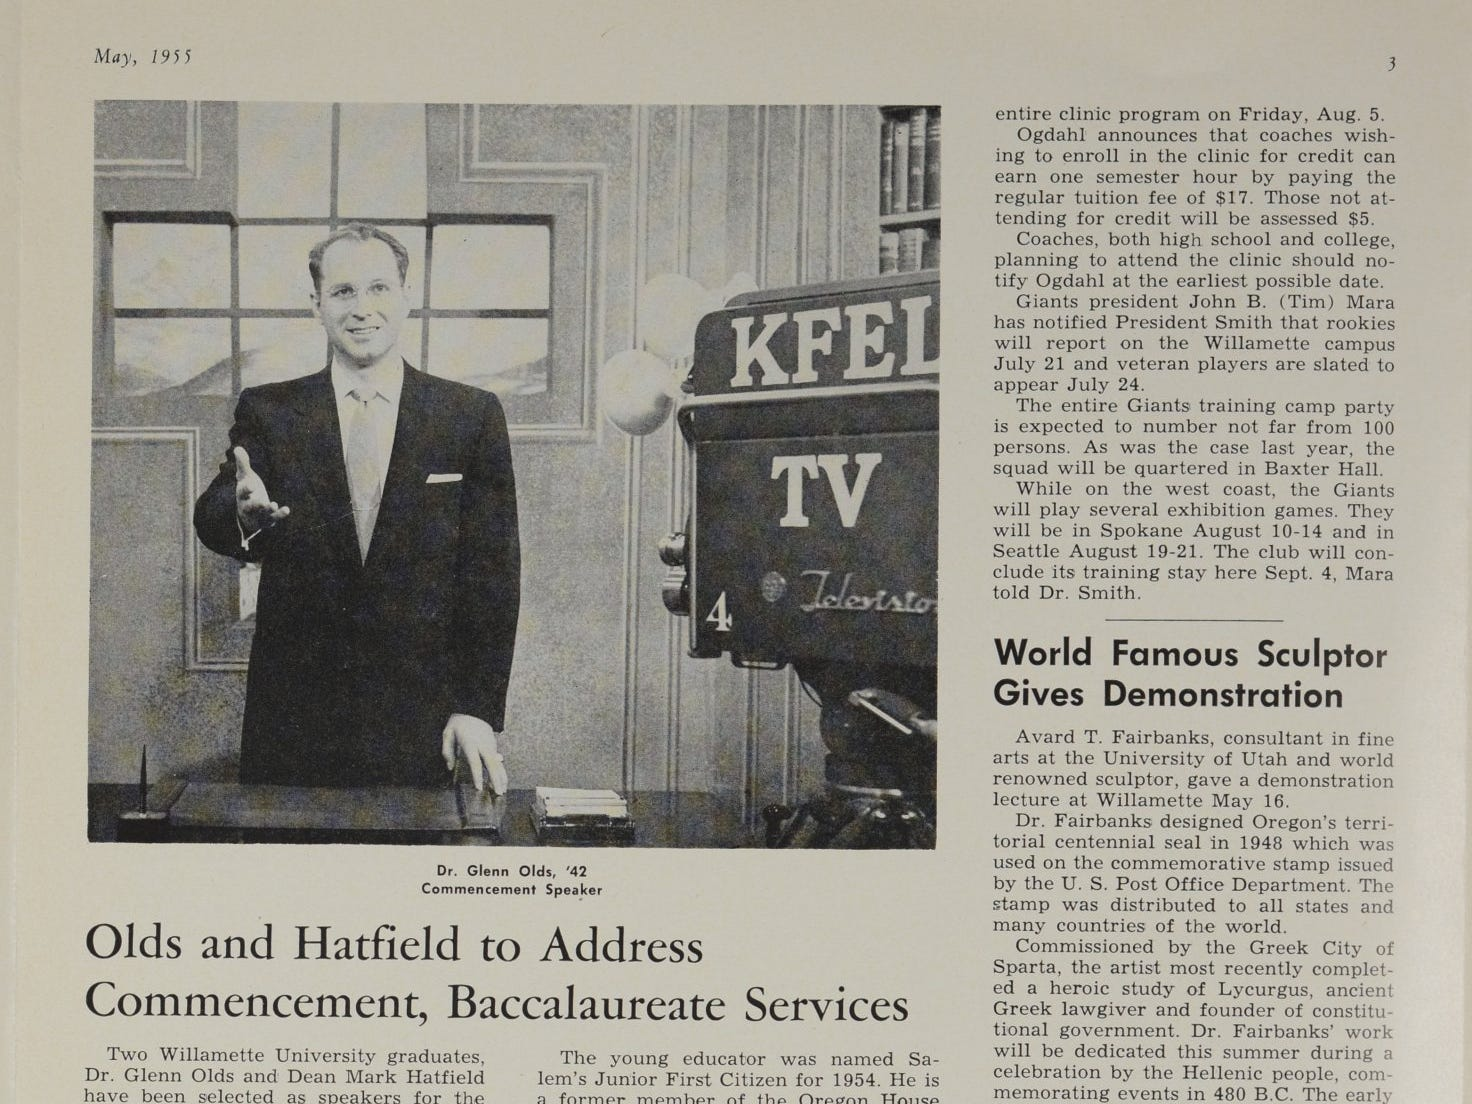 Dr. Glenn A. Olds, Class of 1942, returned to Willamette University in 1955 to speak at commencement.